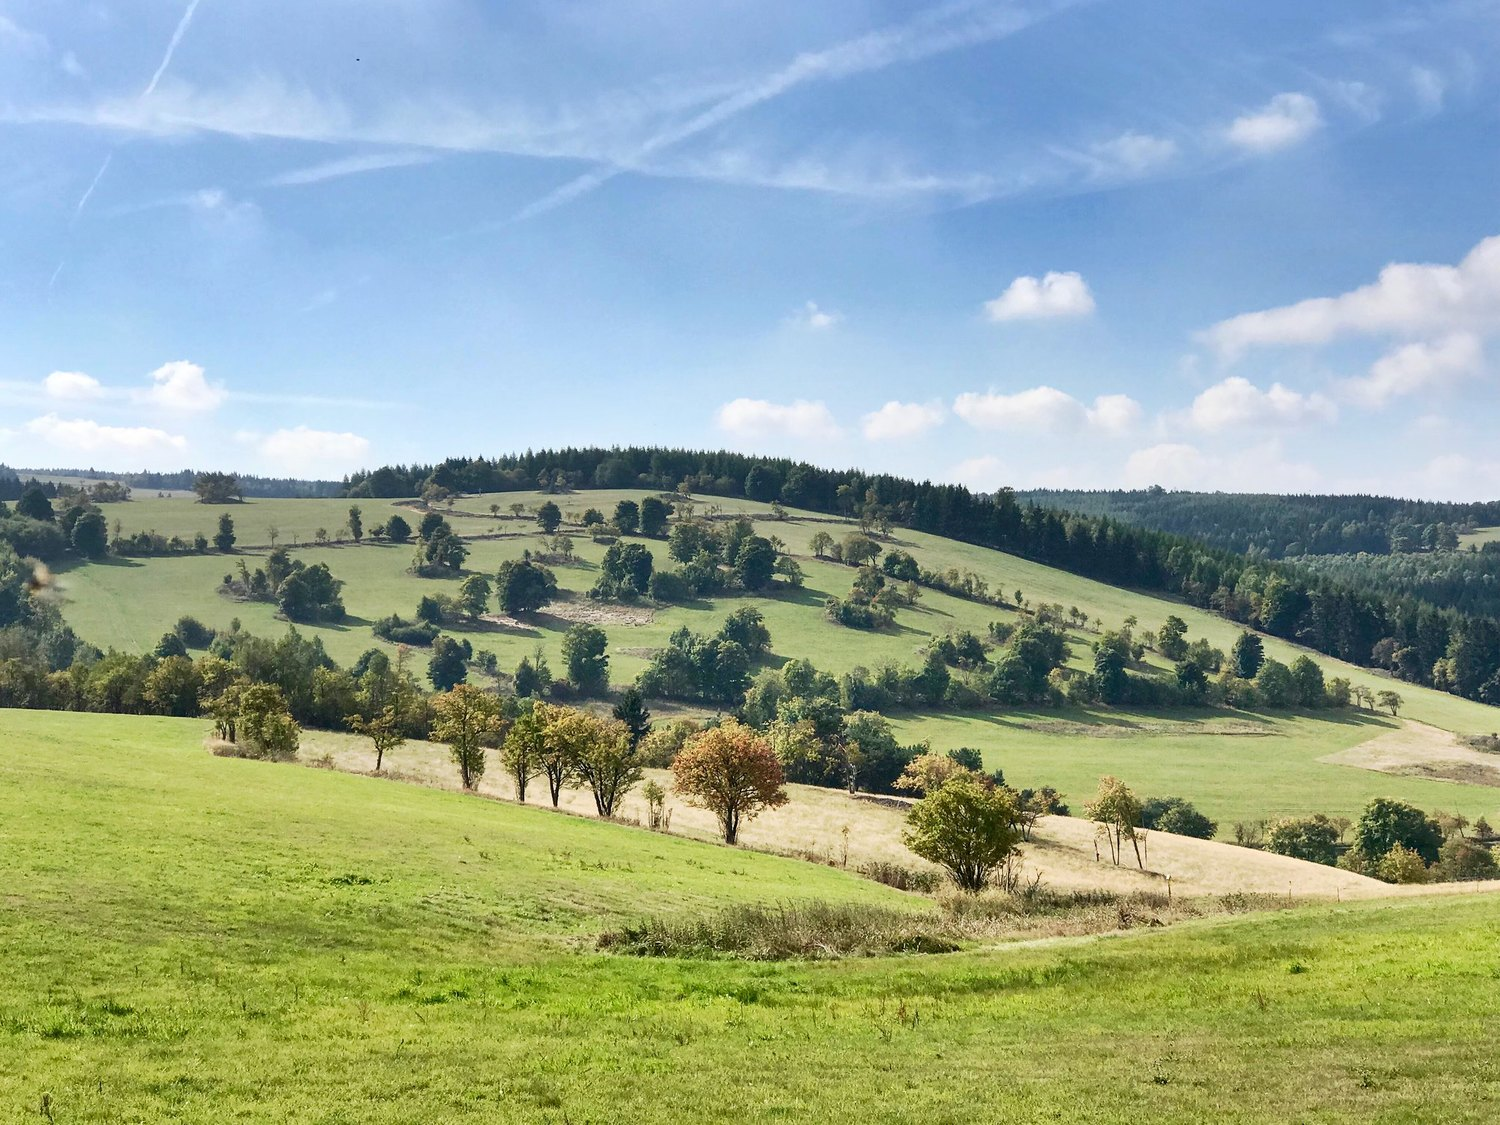 A mosaic landscape in the Erzgebirge. The Common Agricultural Policy of the EU determines the future of biodiversity and farmers in such rural areas.